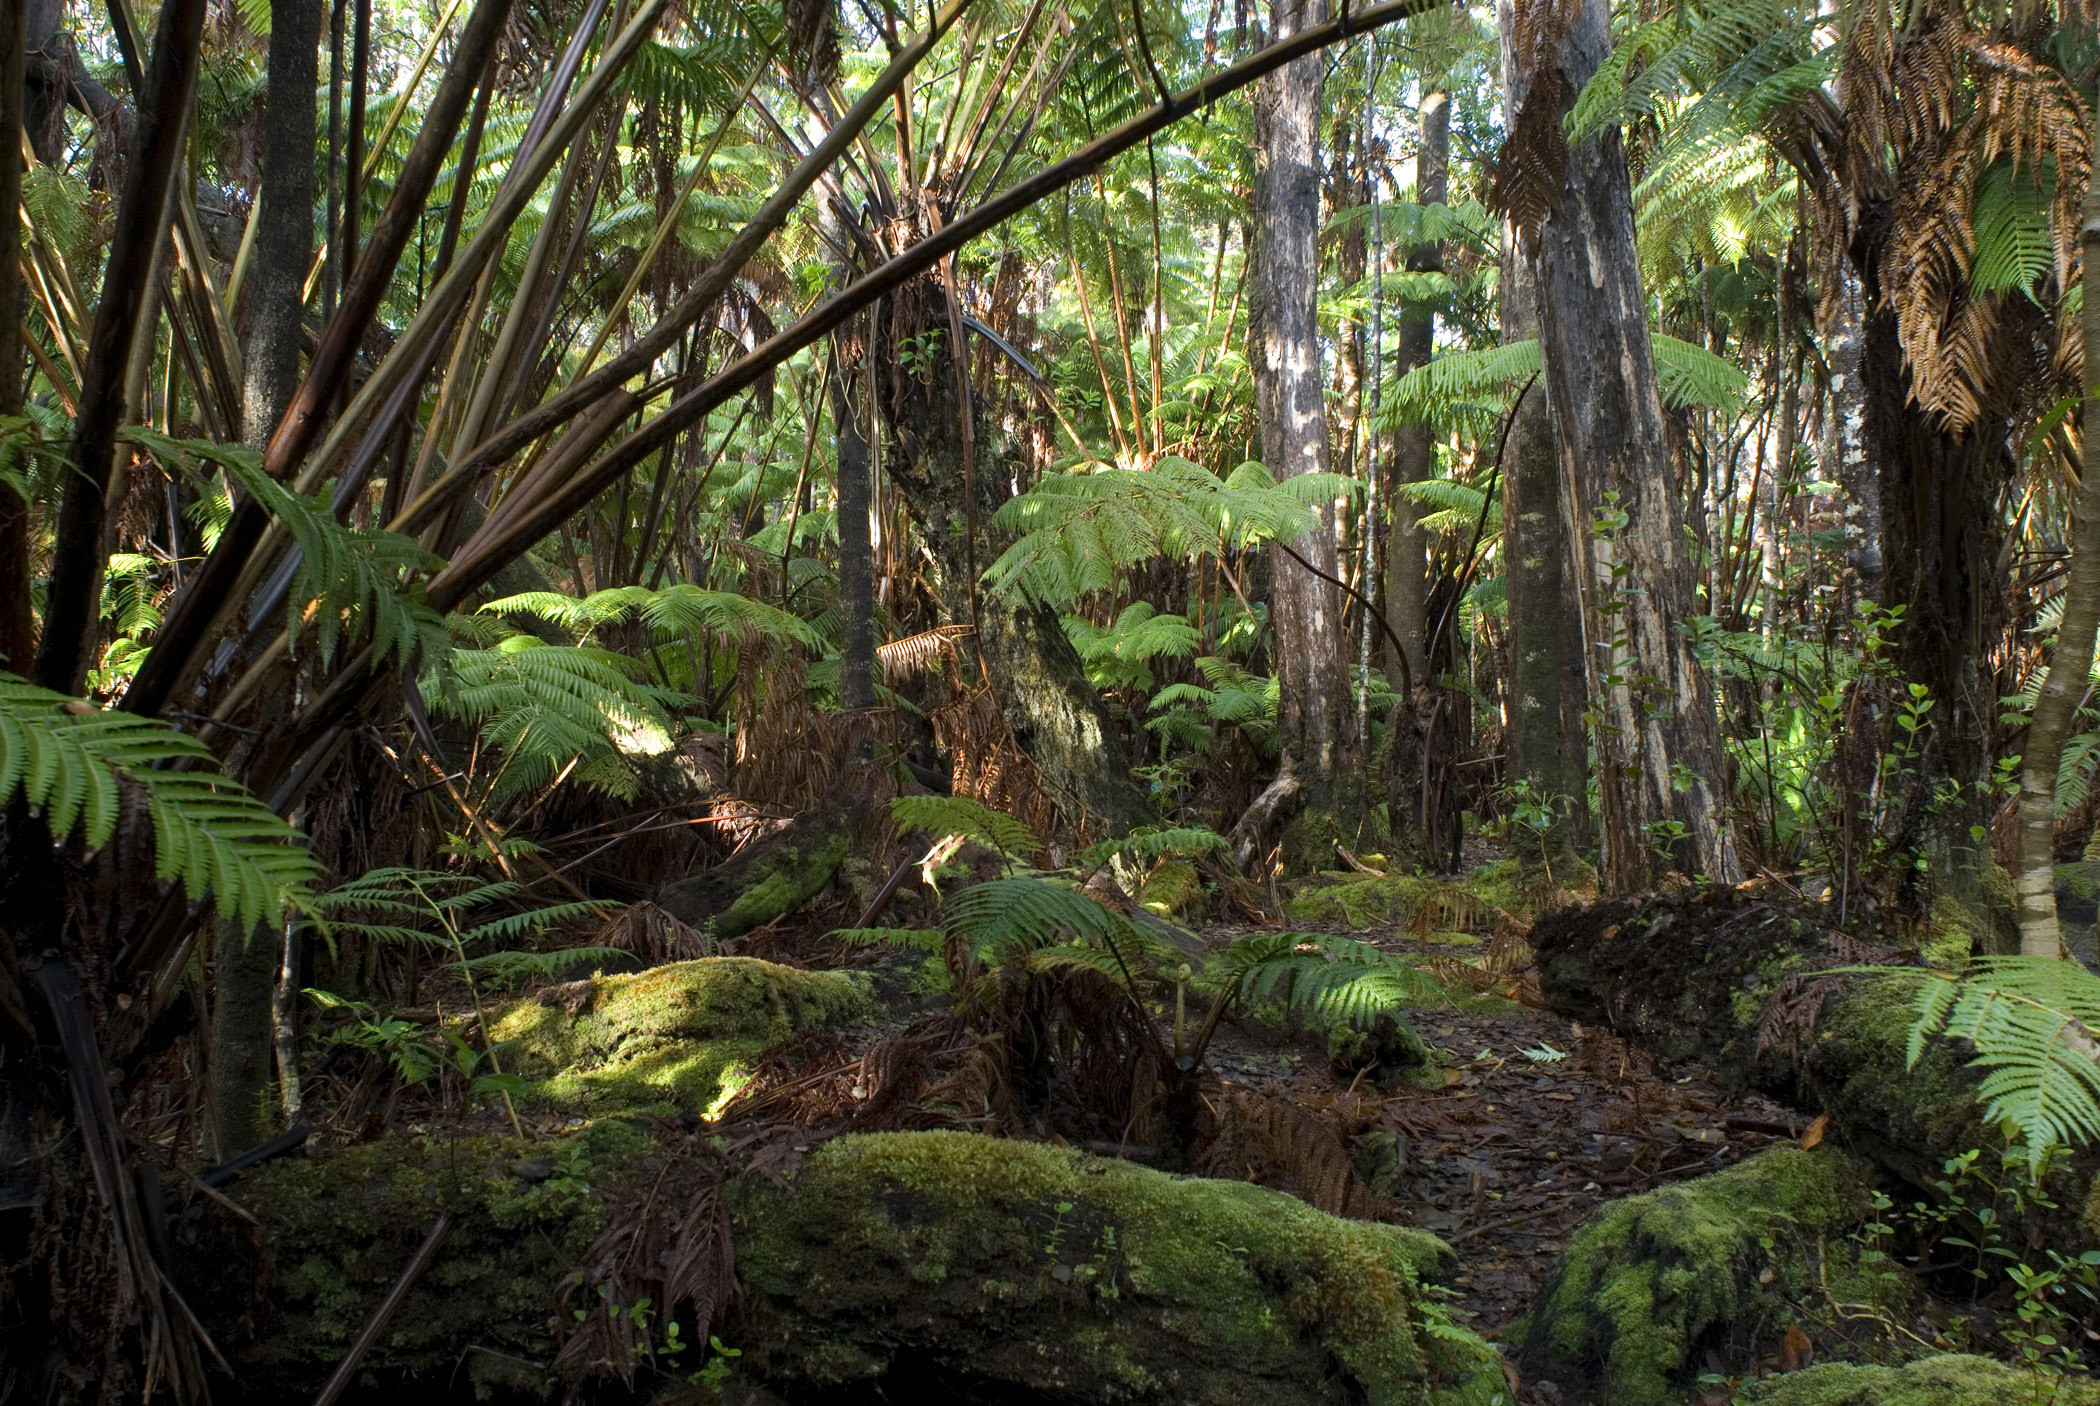 2100x1406 Hawaiian rainforest background with dense trees and lush green ferns and  vegetation covering the floor